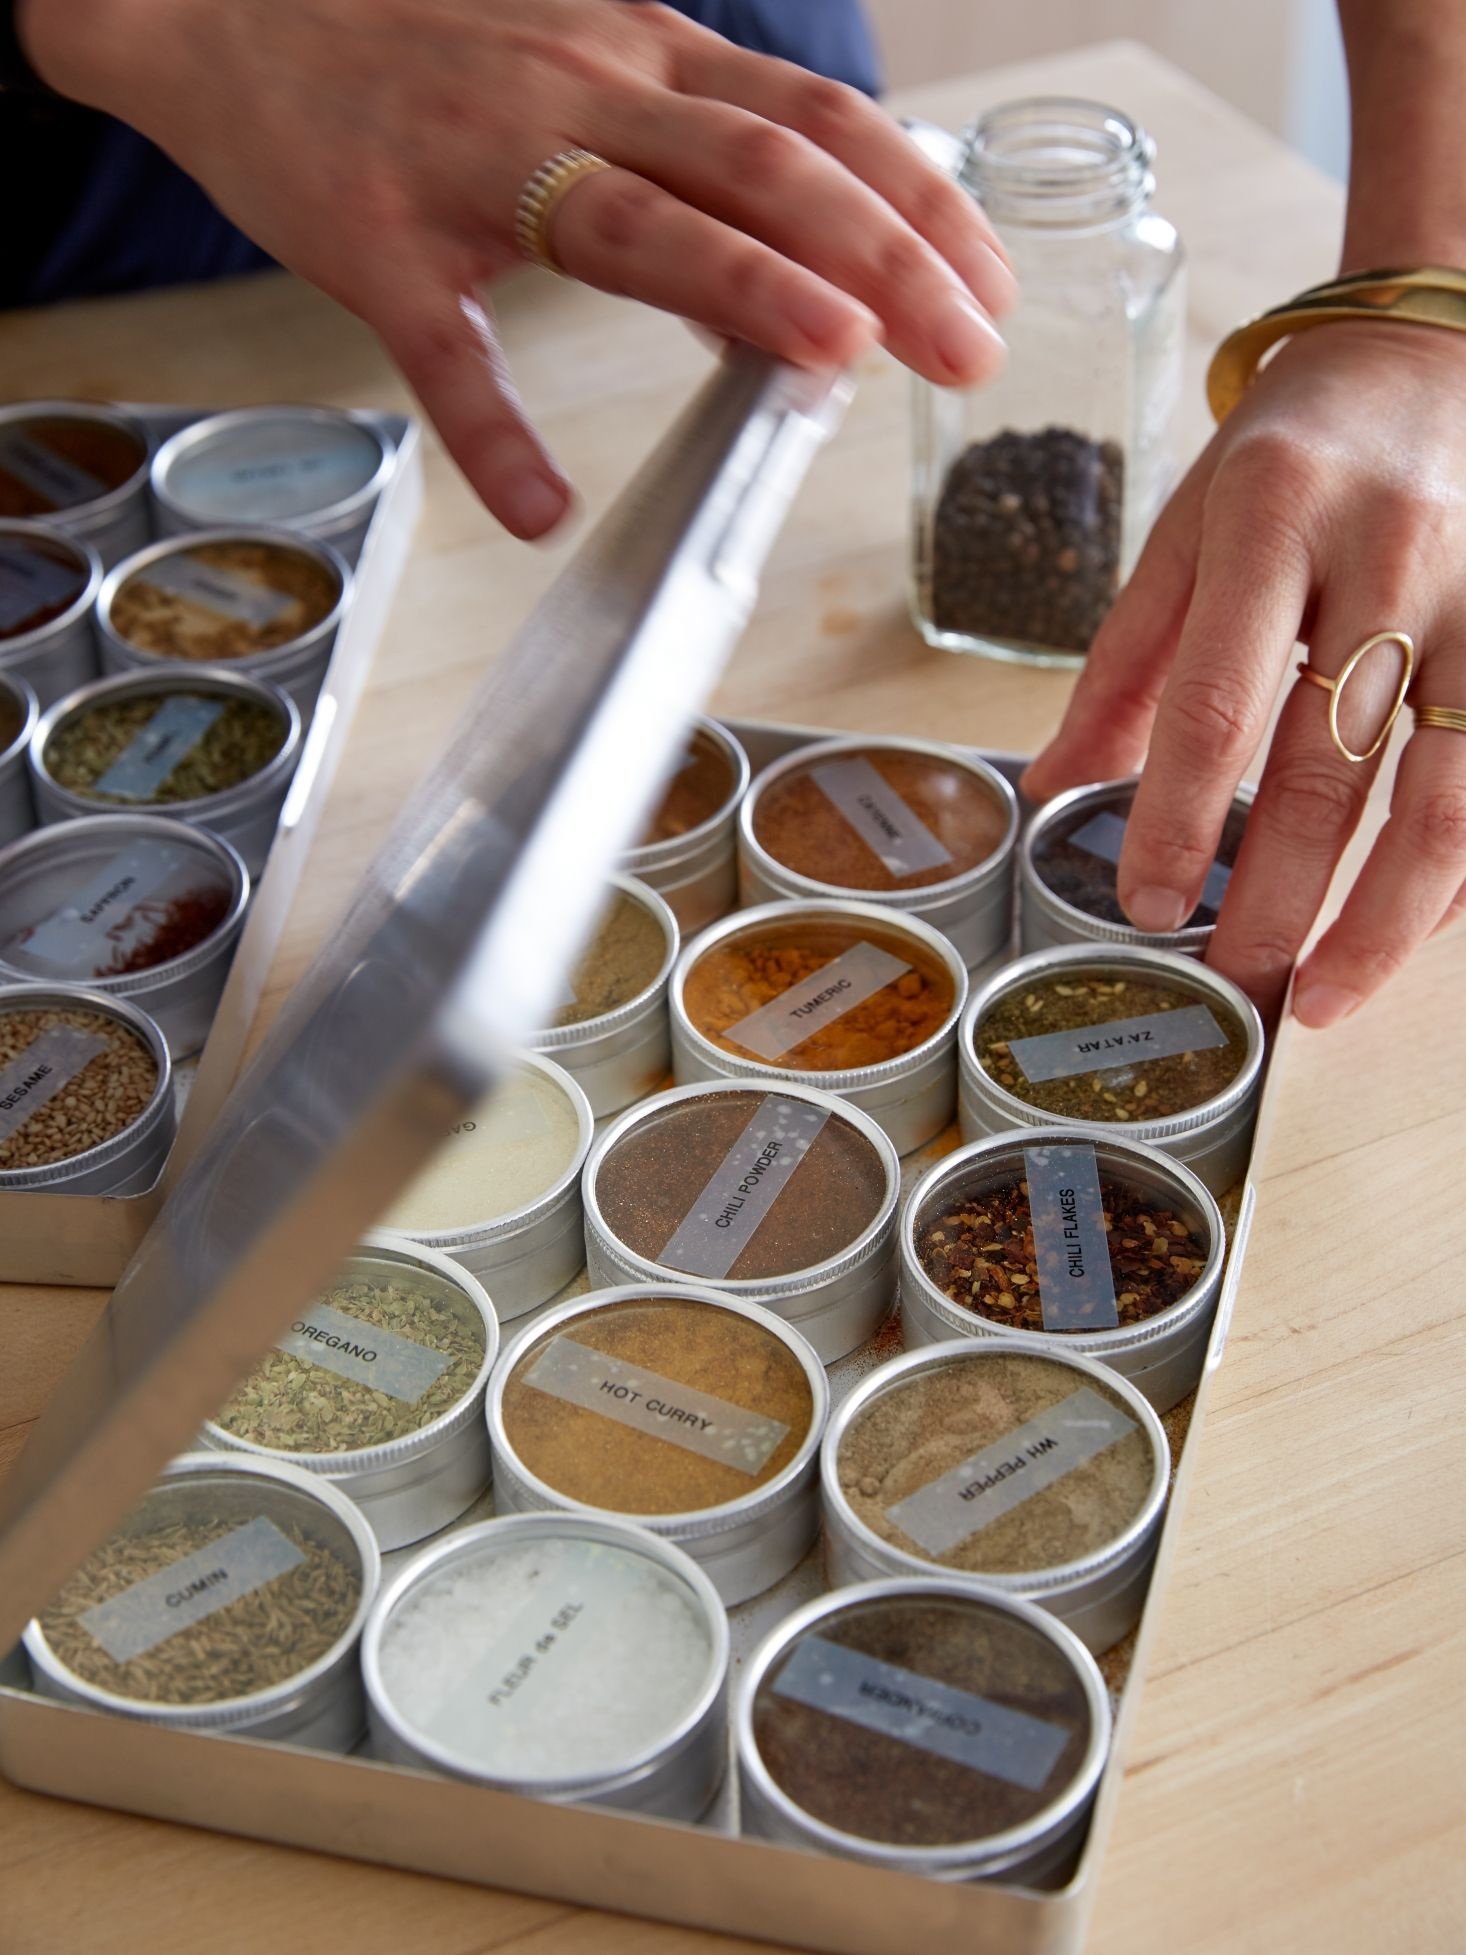 8 Practical And Artful Ways To Label Spice Jars